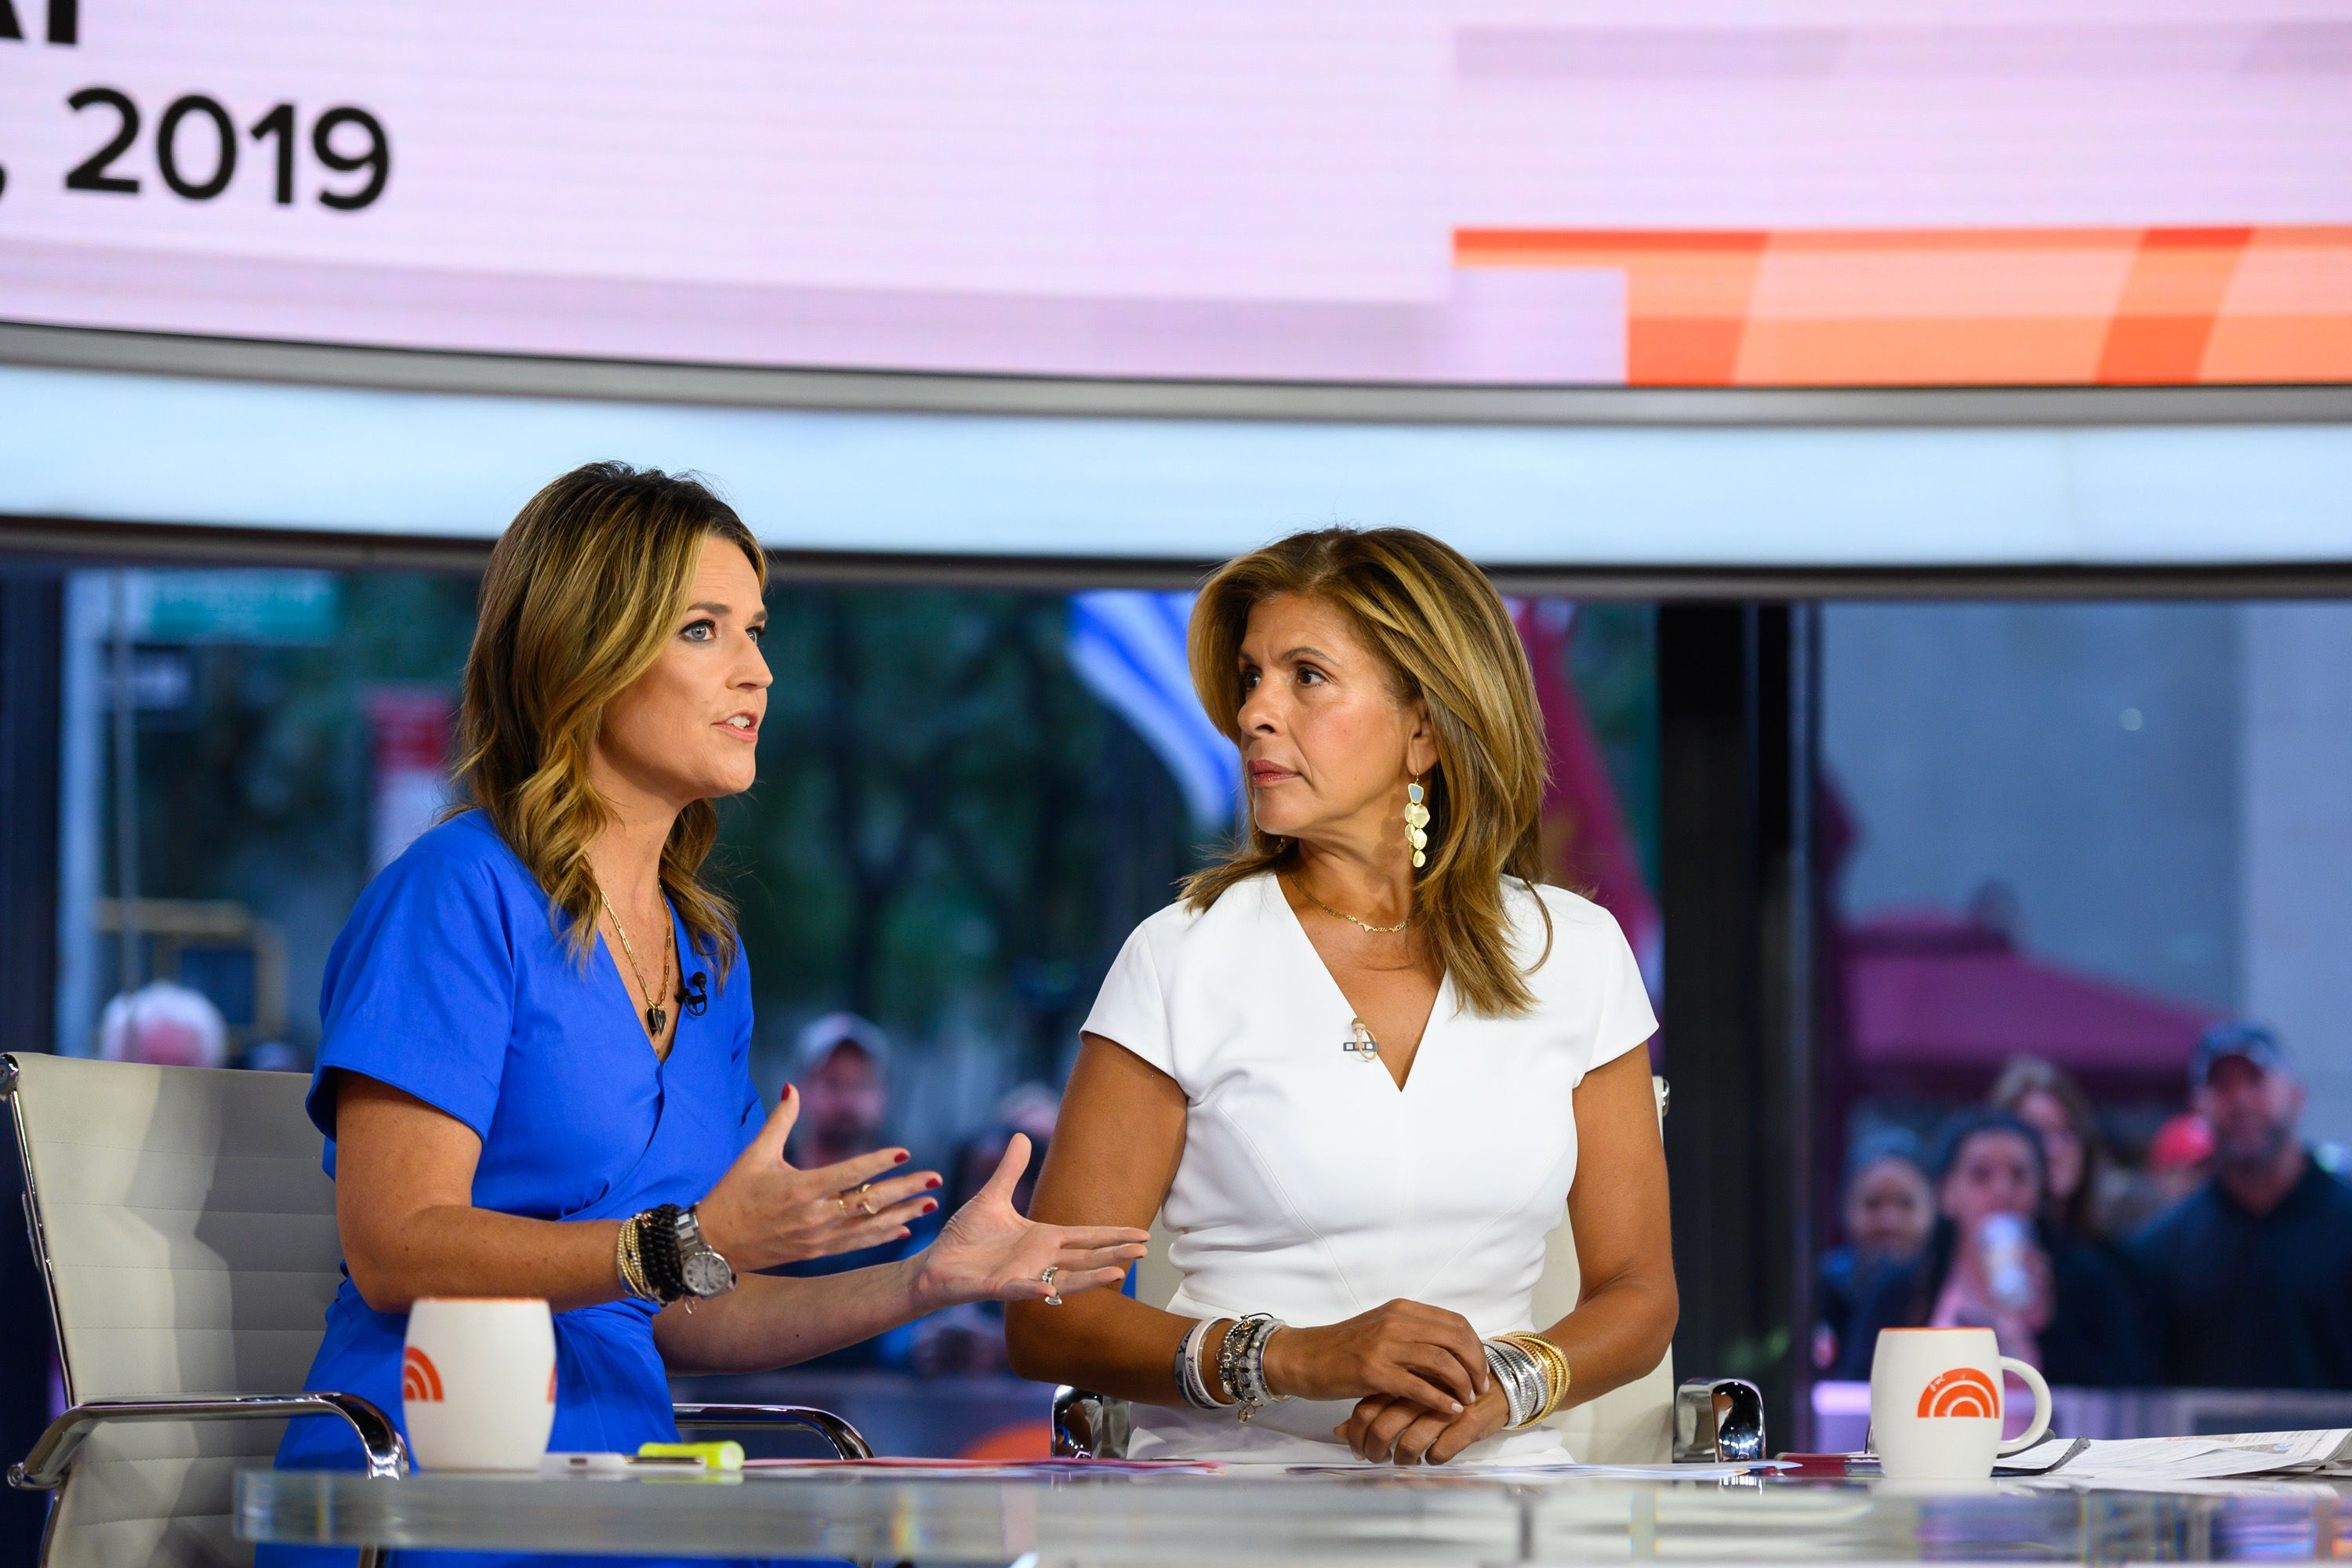 Savannah Guthrie and Hoda Kotb at Today - Season 68 TODAY on Monday, September 9, 2019 | Photo: Getty Images